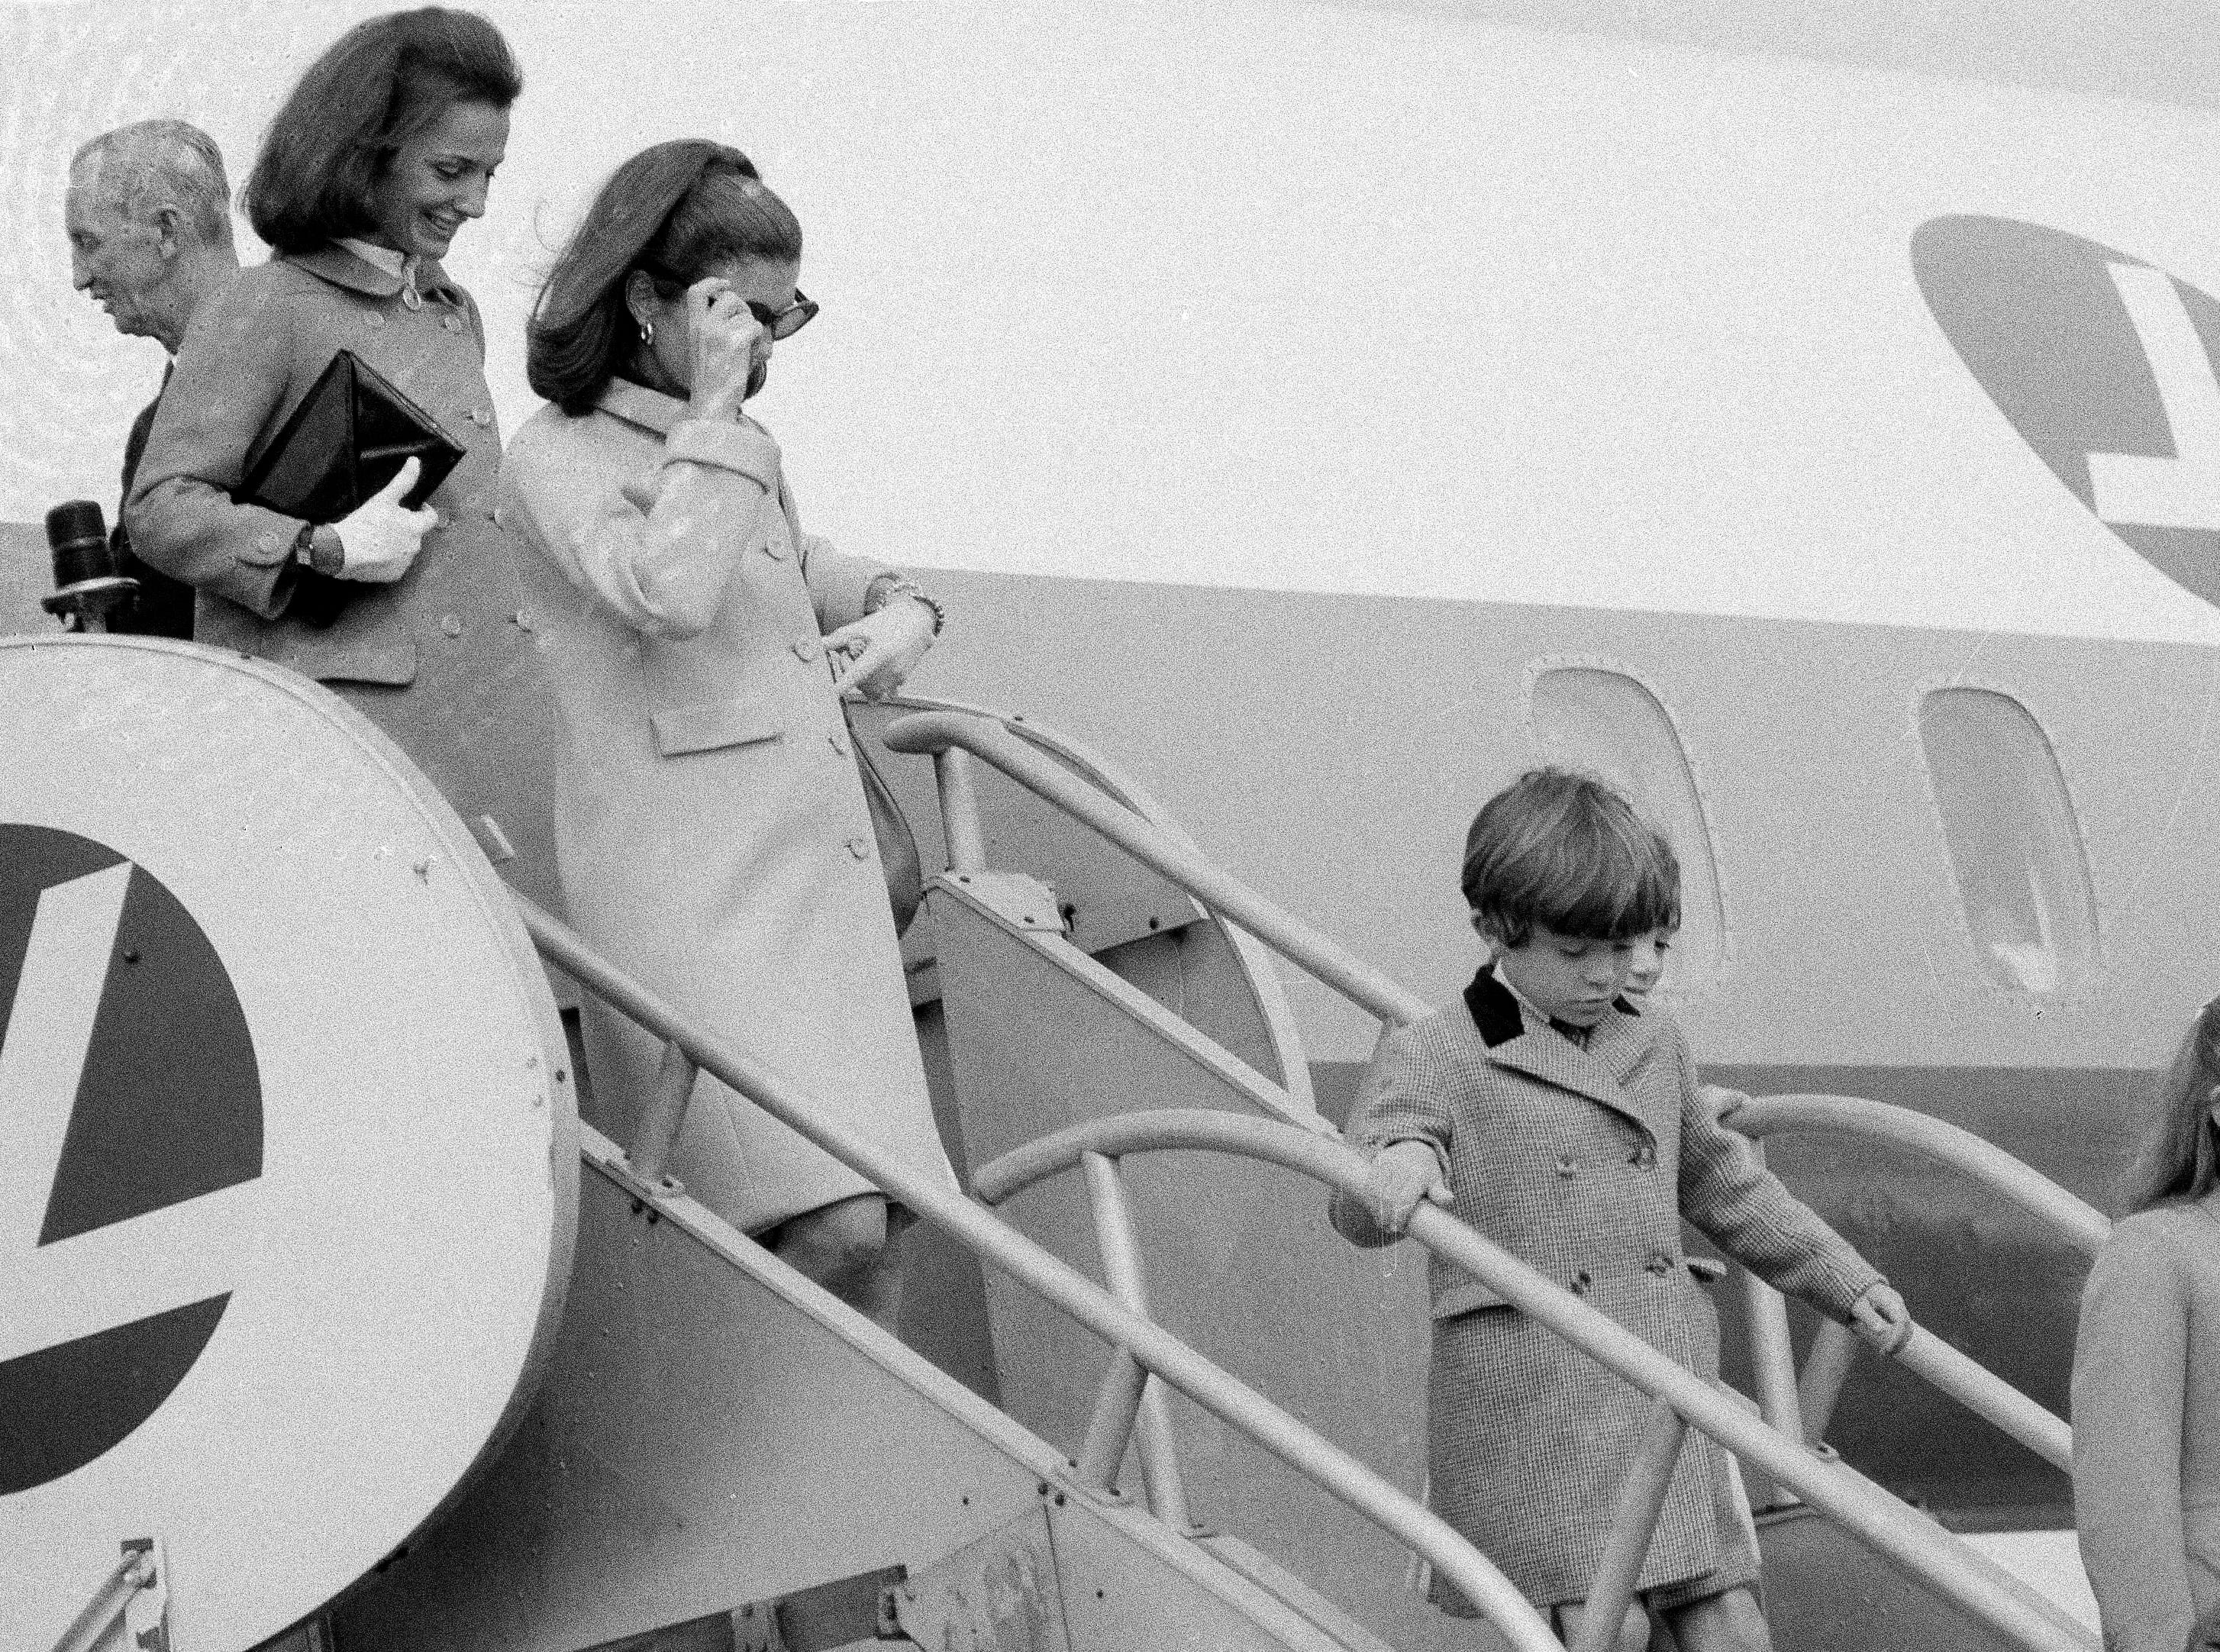 Jacqueline Kennedy, left, leaves plane on arrival at Kennedy Airport in New York, after a vacation in Acapulco, Mexico, March 28, 1967. Mrs. Kennedy's children, John and Caroline are at right. Behind them are the two children of Mrs. Kennedy's sister, Princess Lee Radziwill, Anthony and Anna Christine.